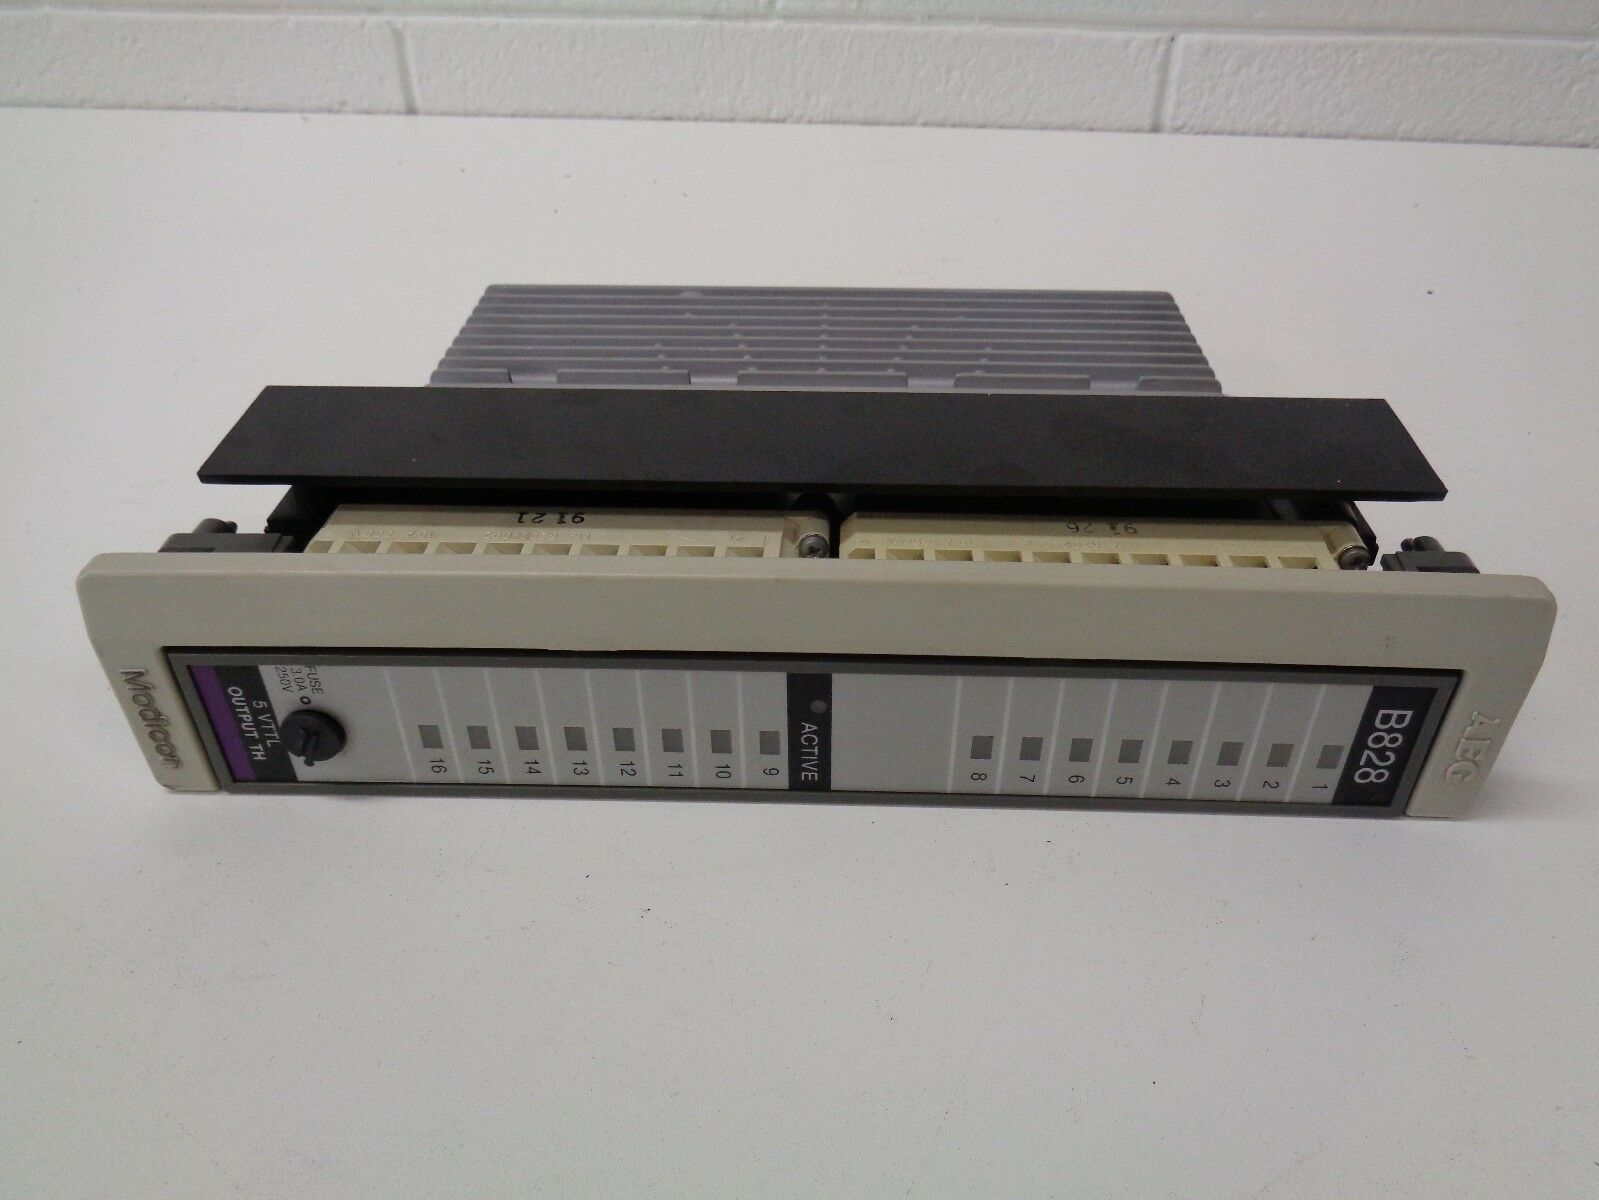 MODICON AS-B828-016 OUTPUT MODULE TH 5VTTL AEG - USED - FREE SHIPPING